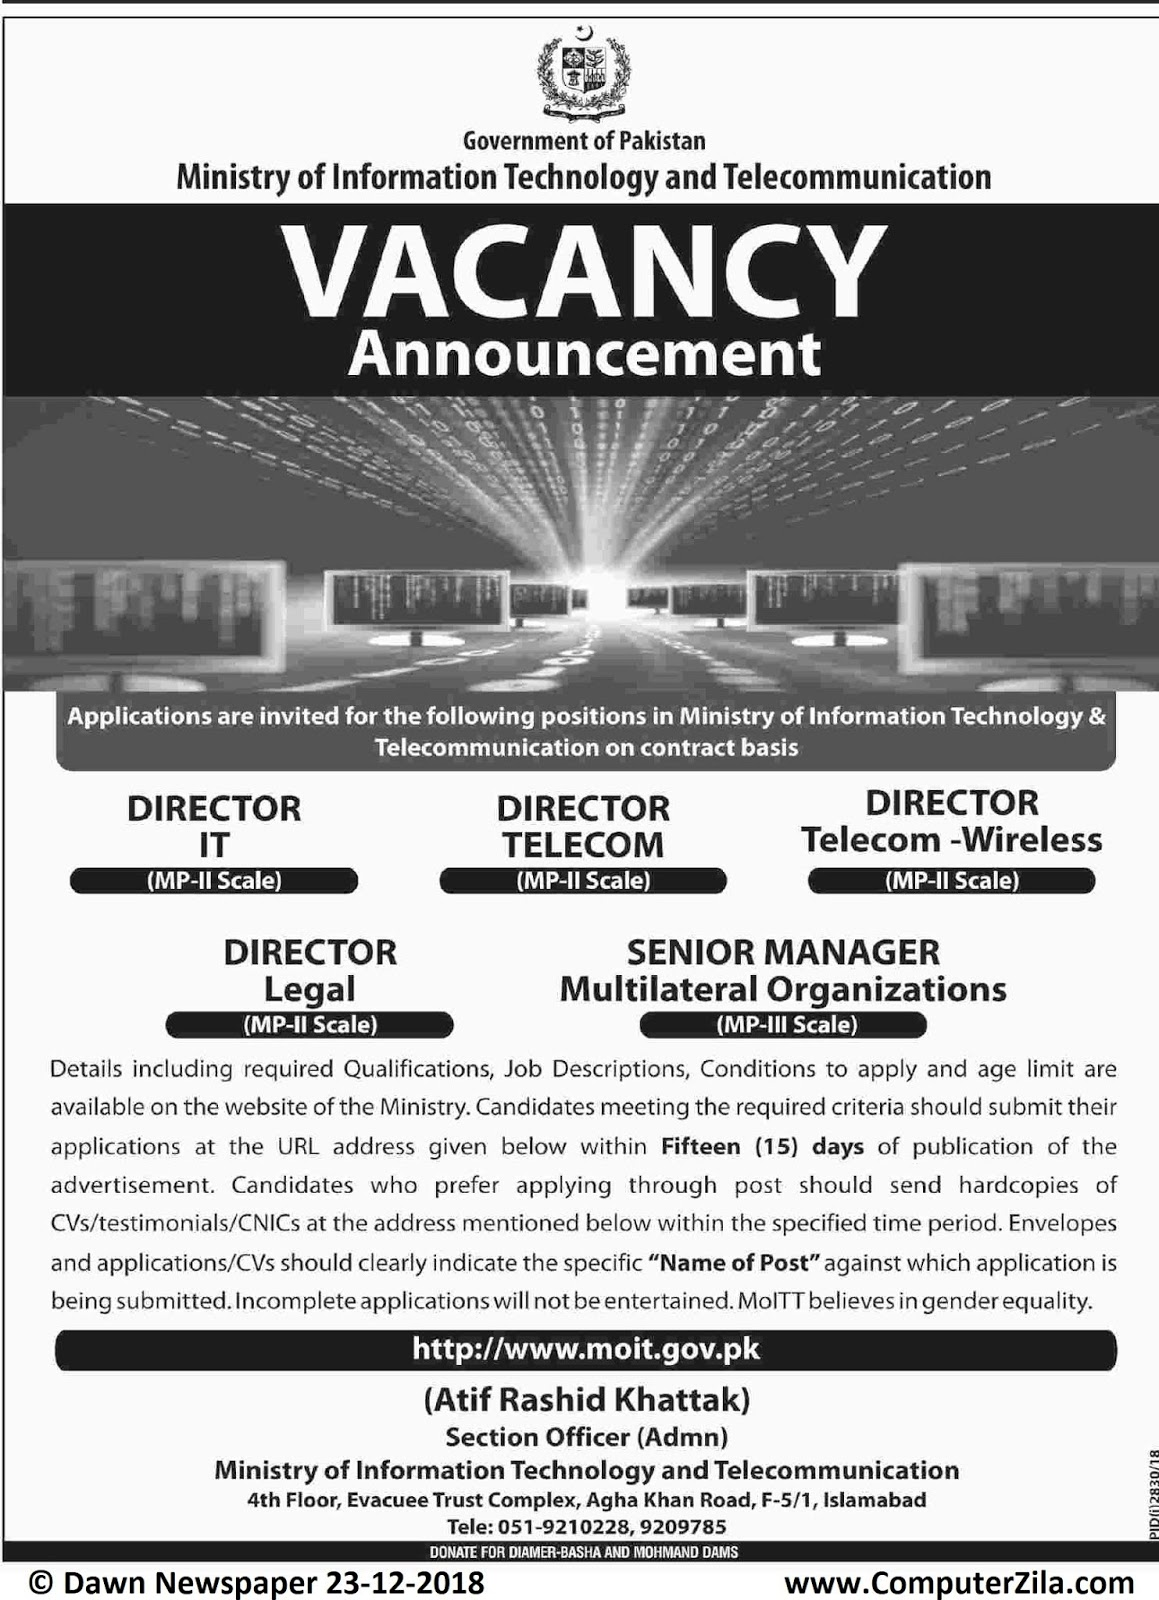 Vacancy Announcement at Ministry of Information Technology and Telecommunication